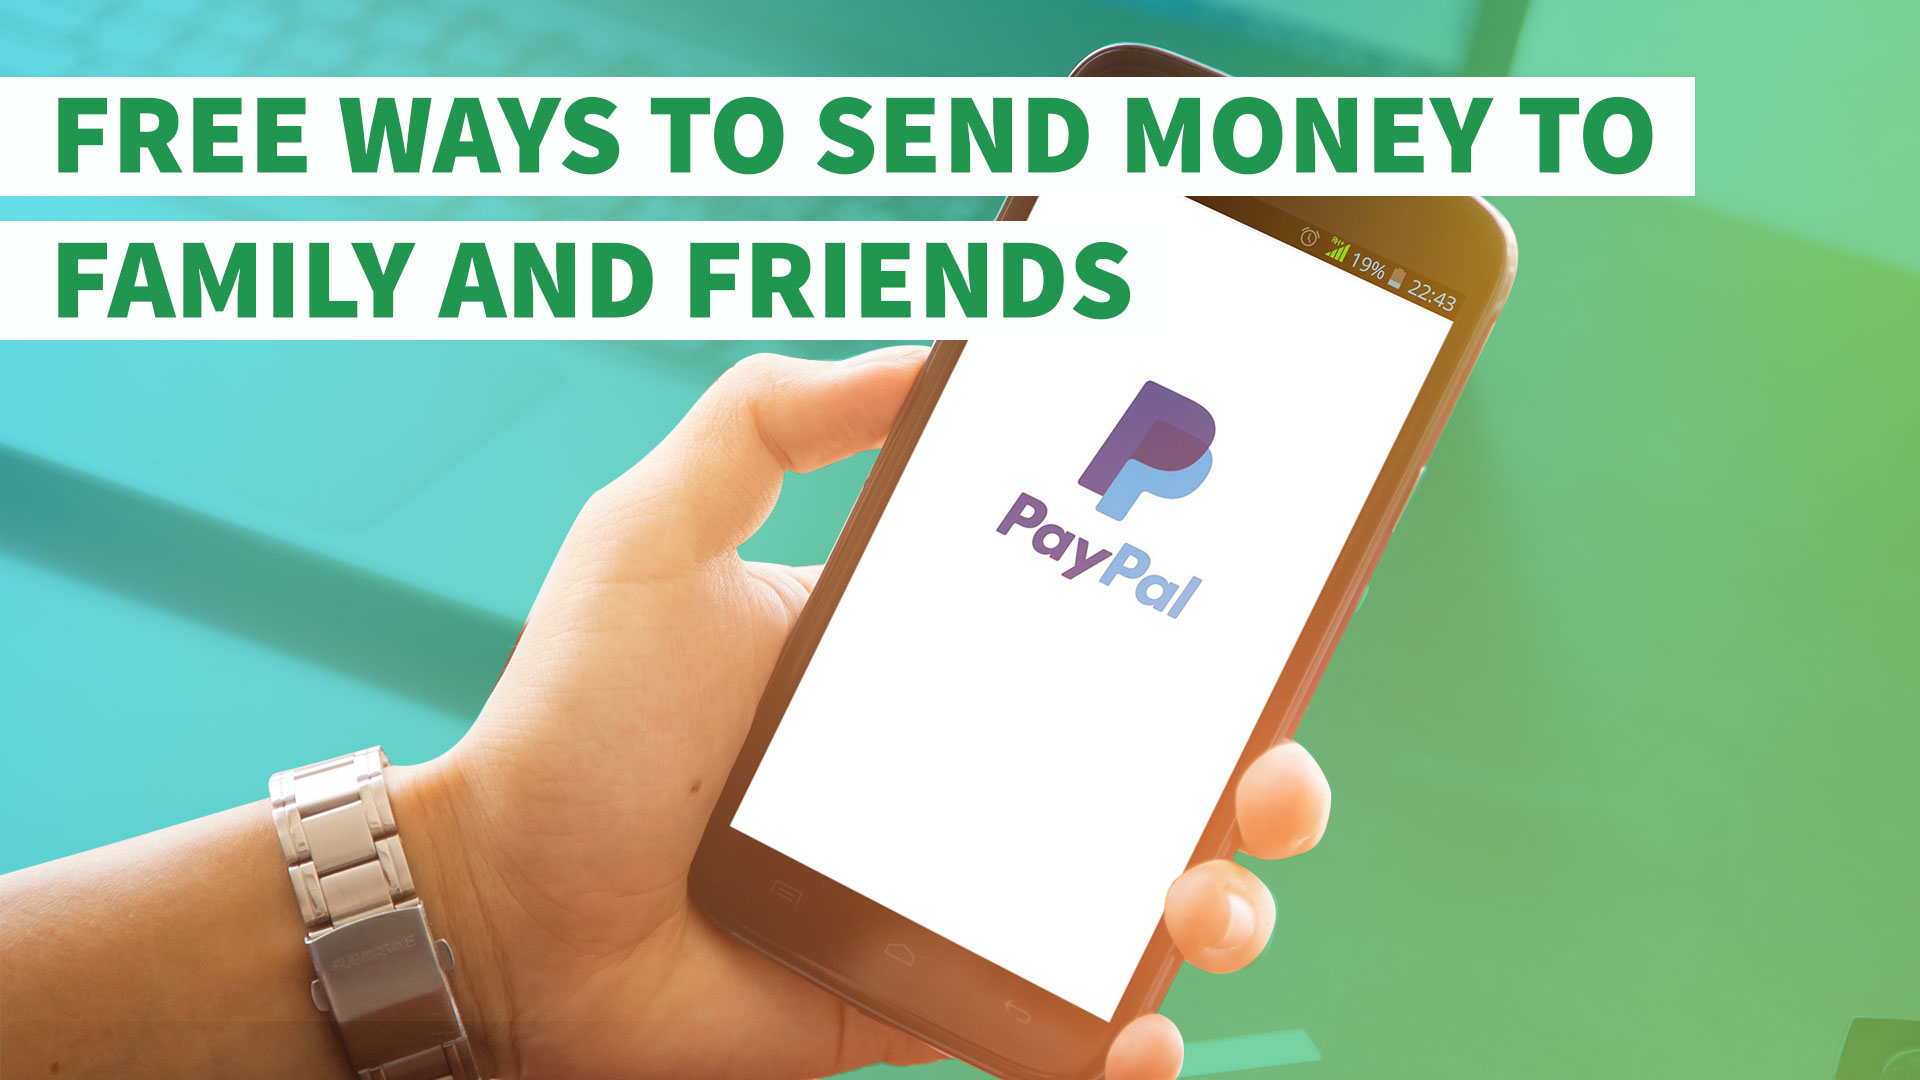 12 Free Ways To Send Money Family And Friends Online Via